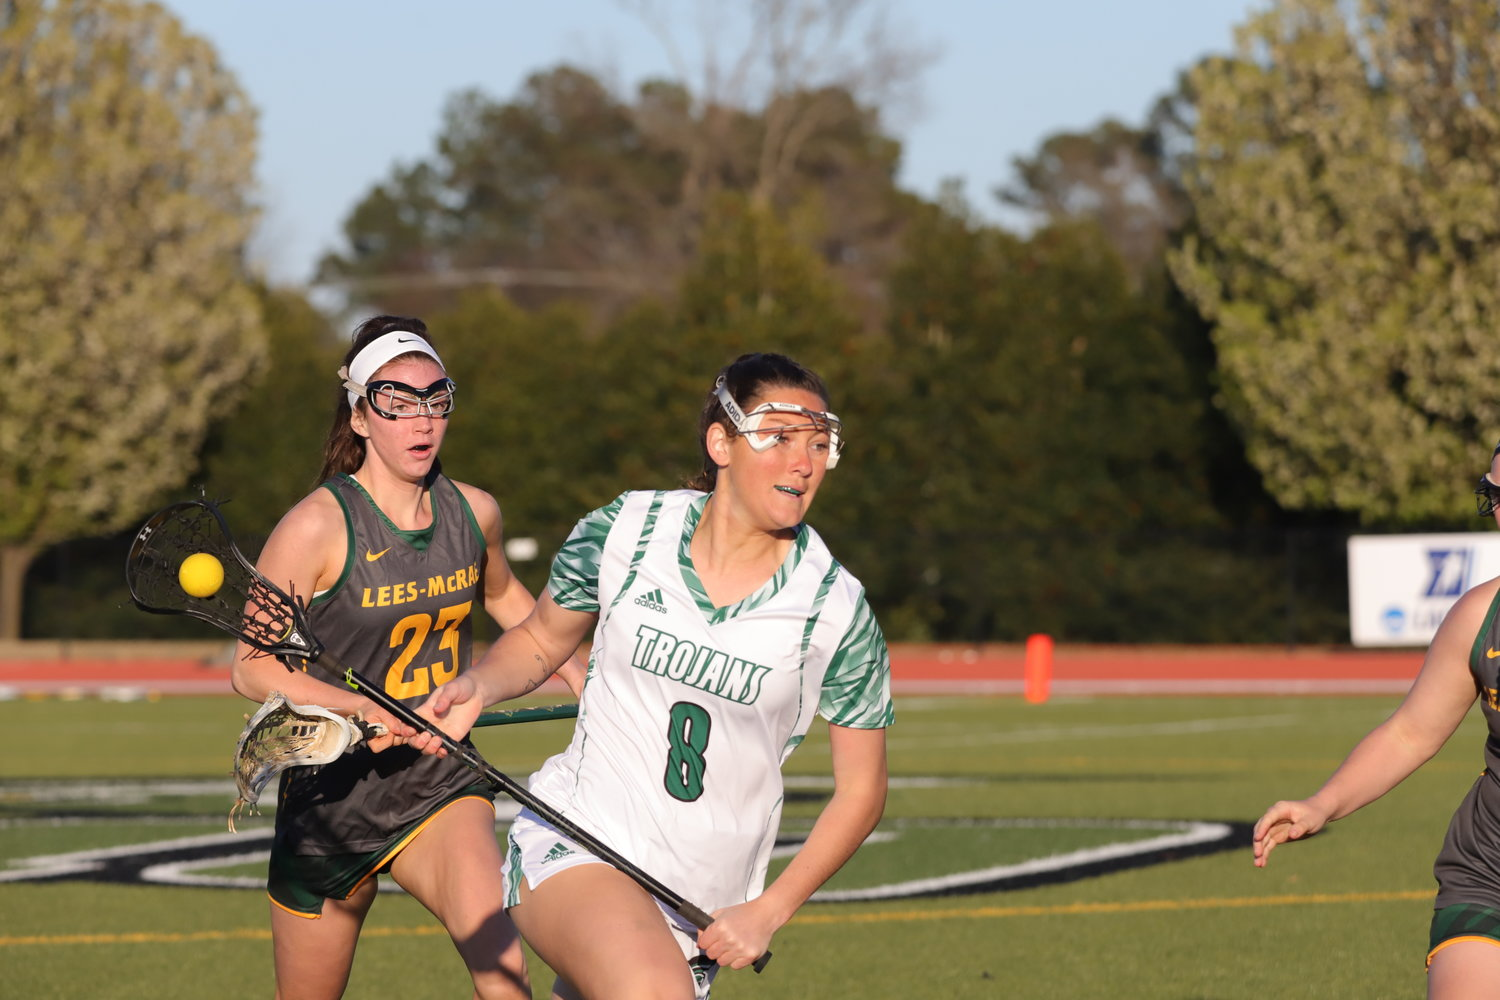 University of Mount Olive midfielder Ali Davis (8) keeps control of the ball during a match last year. The Trojans are ranked No. 2 in the Conference Carolinas women's lacrosse preseason poll.